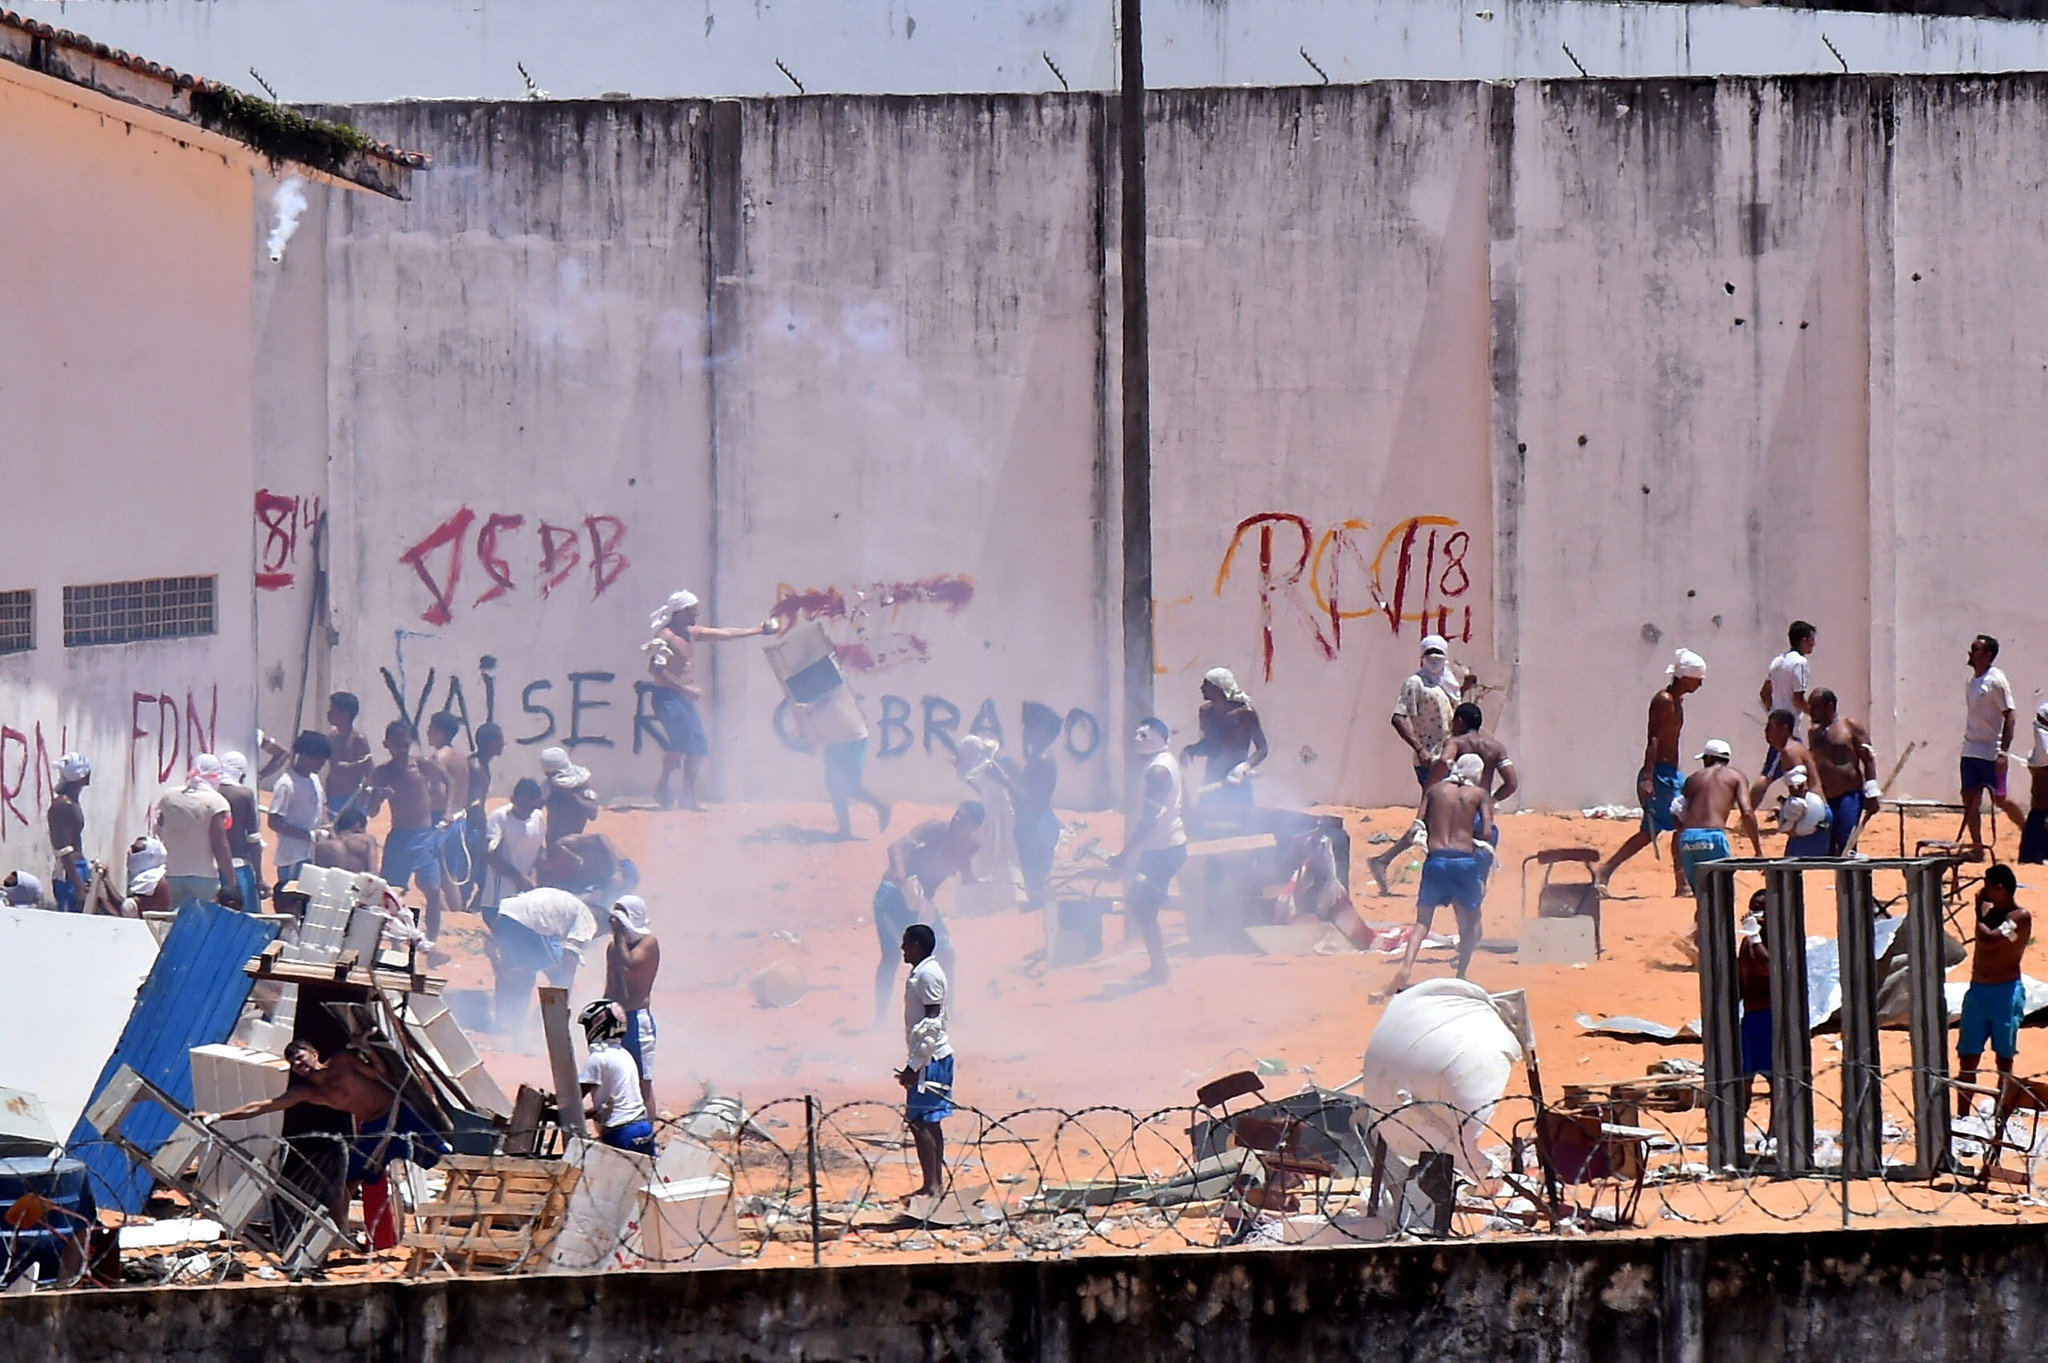 nmates are seen during an uprising at Alcacuz prison in Natal, Rio Grande do Norte state, Brazil, January 19, 2017.  REUTERS/Josemar Goncalves FOR EDITORIAL USE ONLY. NO RESALES. NO ARCHIVES